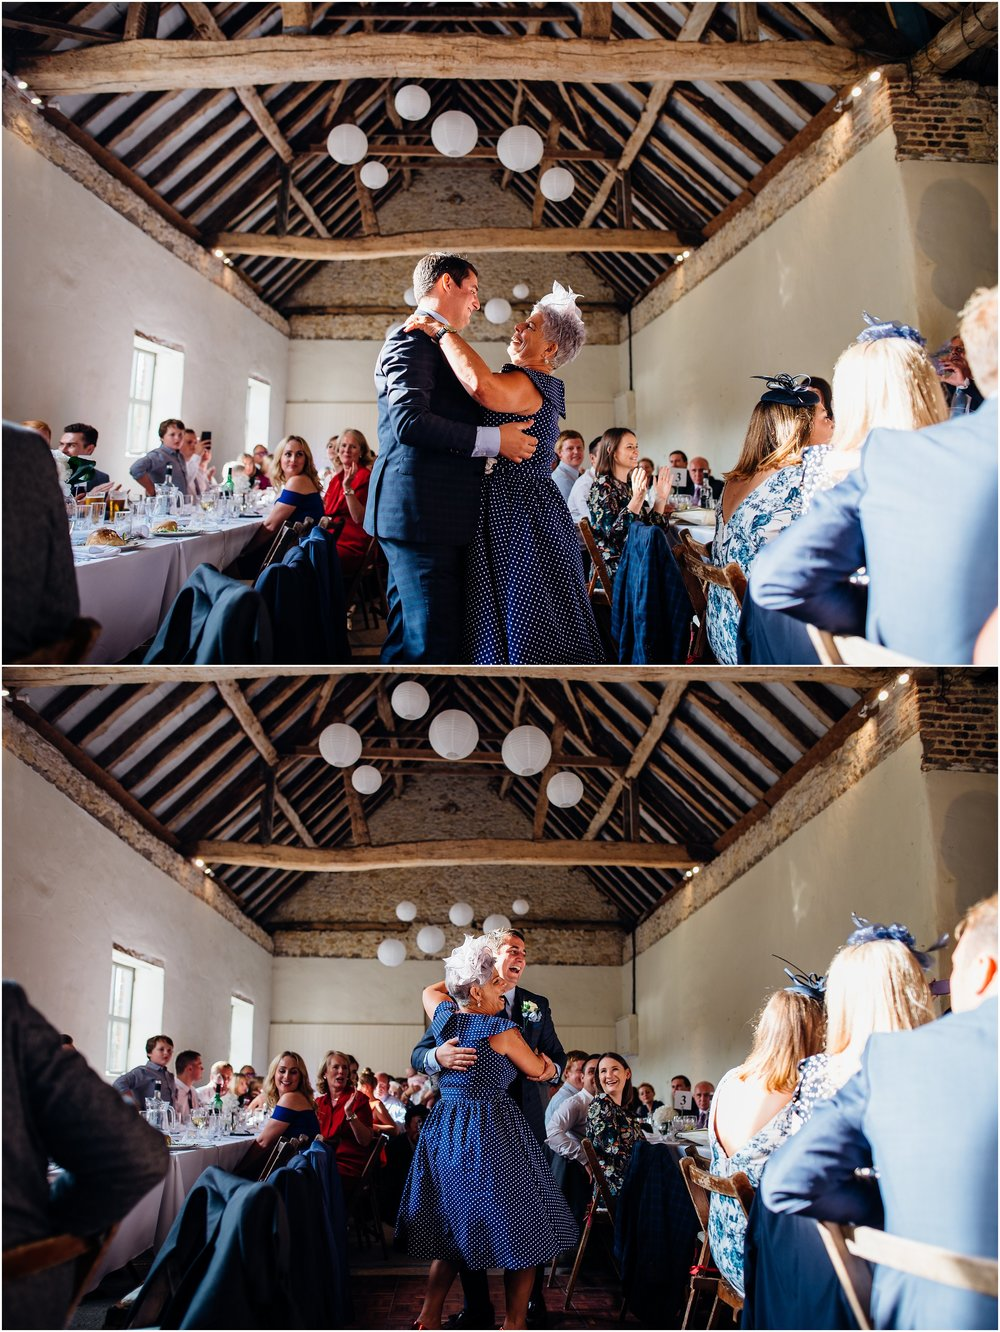 ALTERNATIVE STYLISH UK BARN WEDDING-ISLE OF WIGHT_0056.jpg